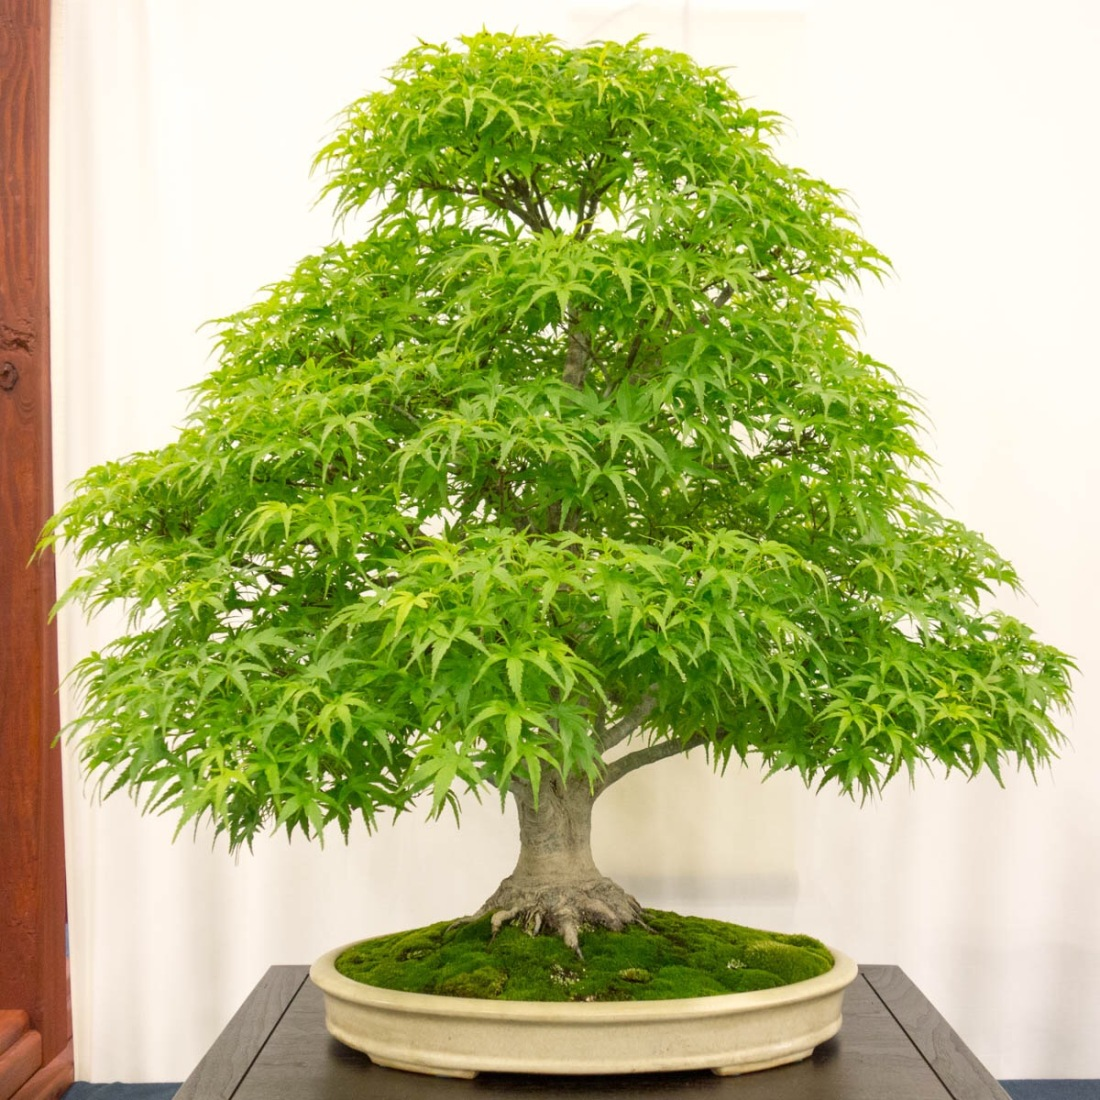 Sharps pygmy Japanese maple